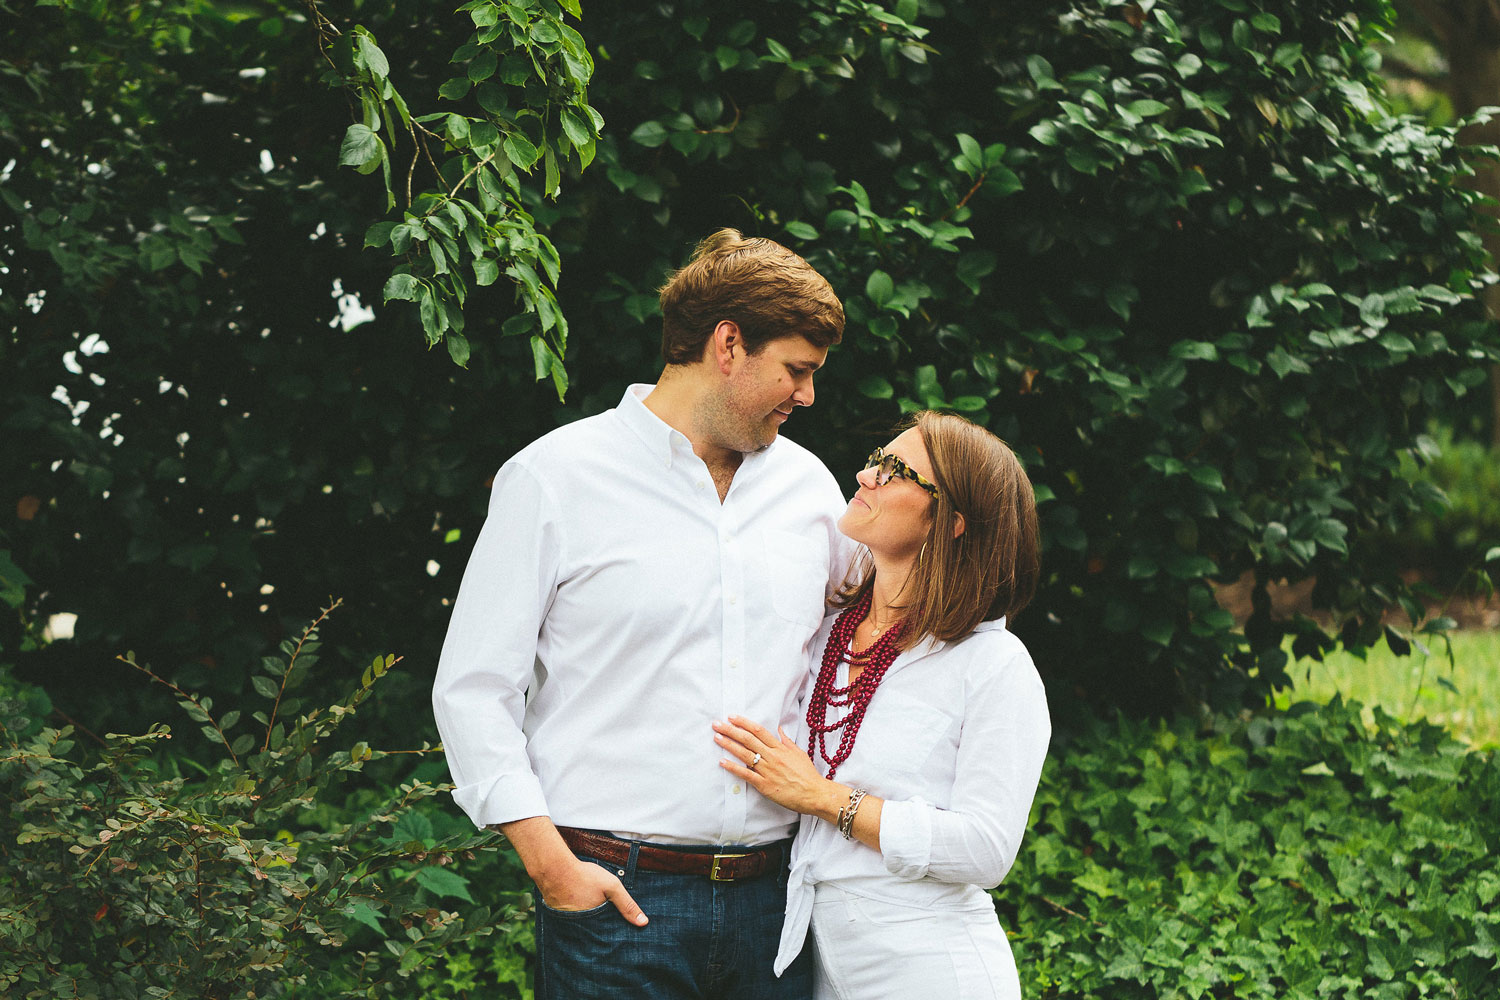 Callie Wamsley and Chase Langhorne engagement shoot wedding e-session ideas